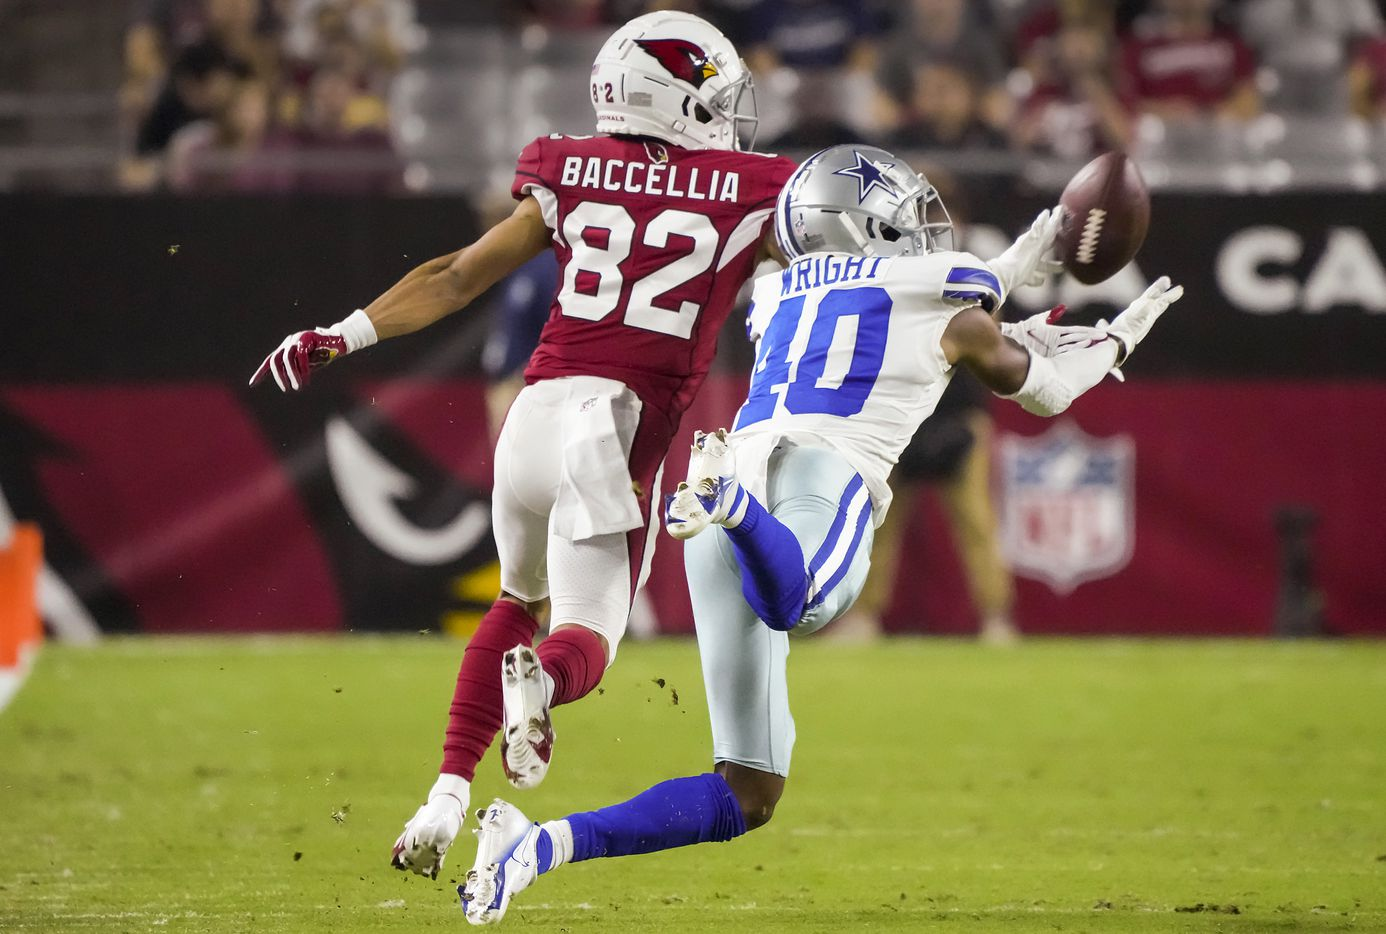 Dallas Cowboys cornerback Nahshon Wright (40) breaks up a pass intended for Arizona Cardinals wide receiver Andre Baccellia (82) during the second half of a preseason NFL football game at State Farm Stadium on Friday, Aug. 13, 2021, in Glendale, Ariz.